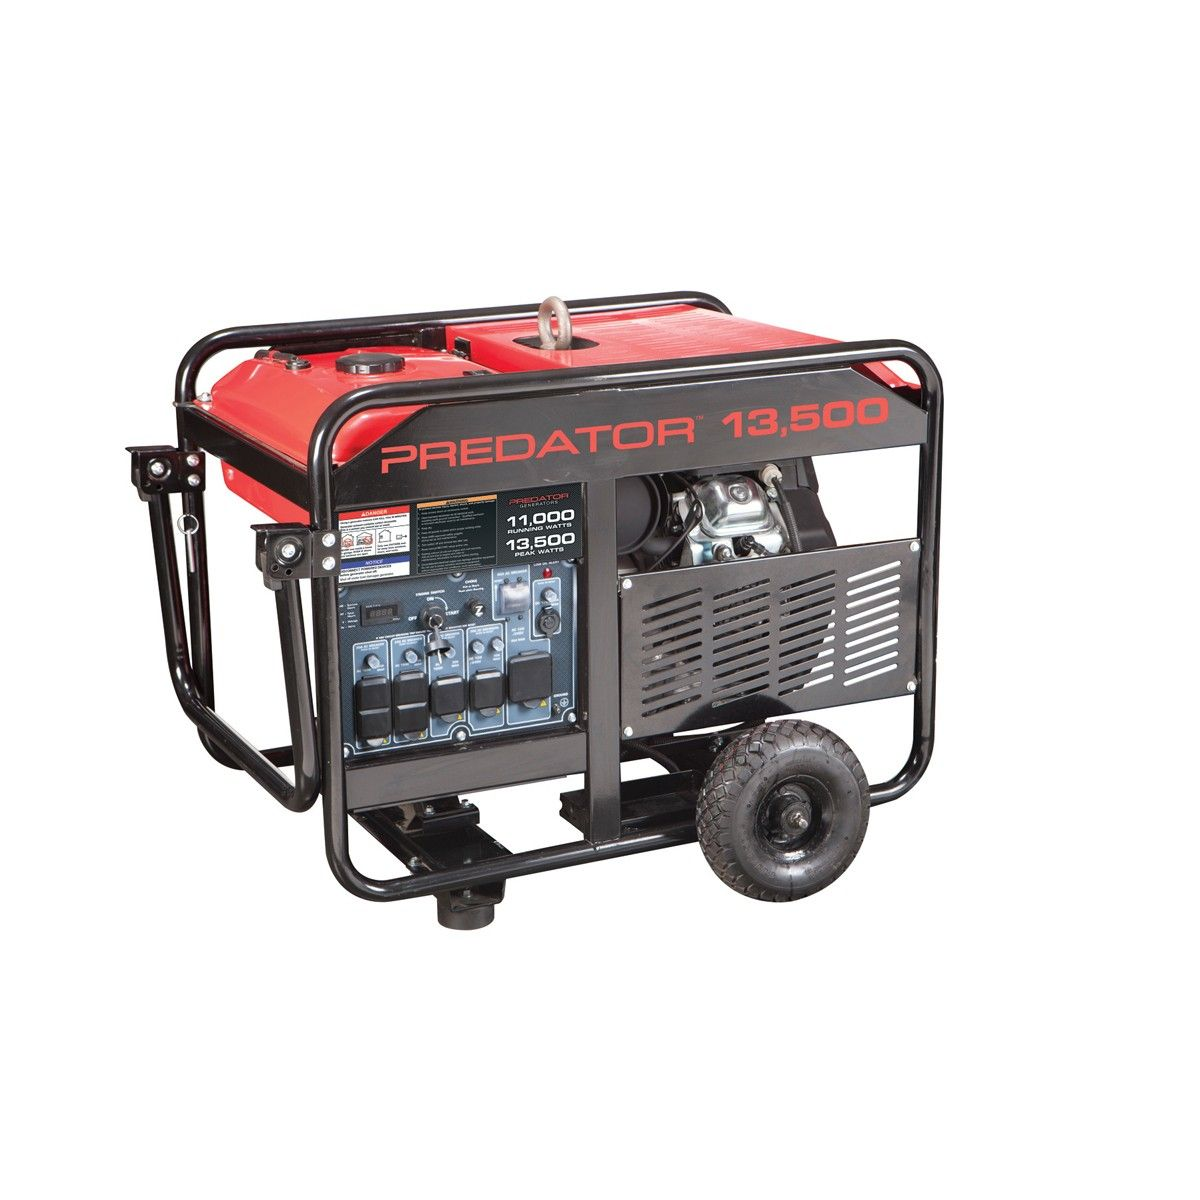 Gas Generators Portable Gas Generators At Harbor Freight Gas Generator Harbor Freight Tools Portable Power Generator